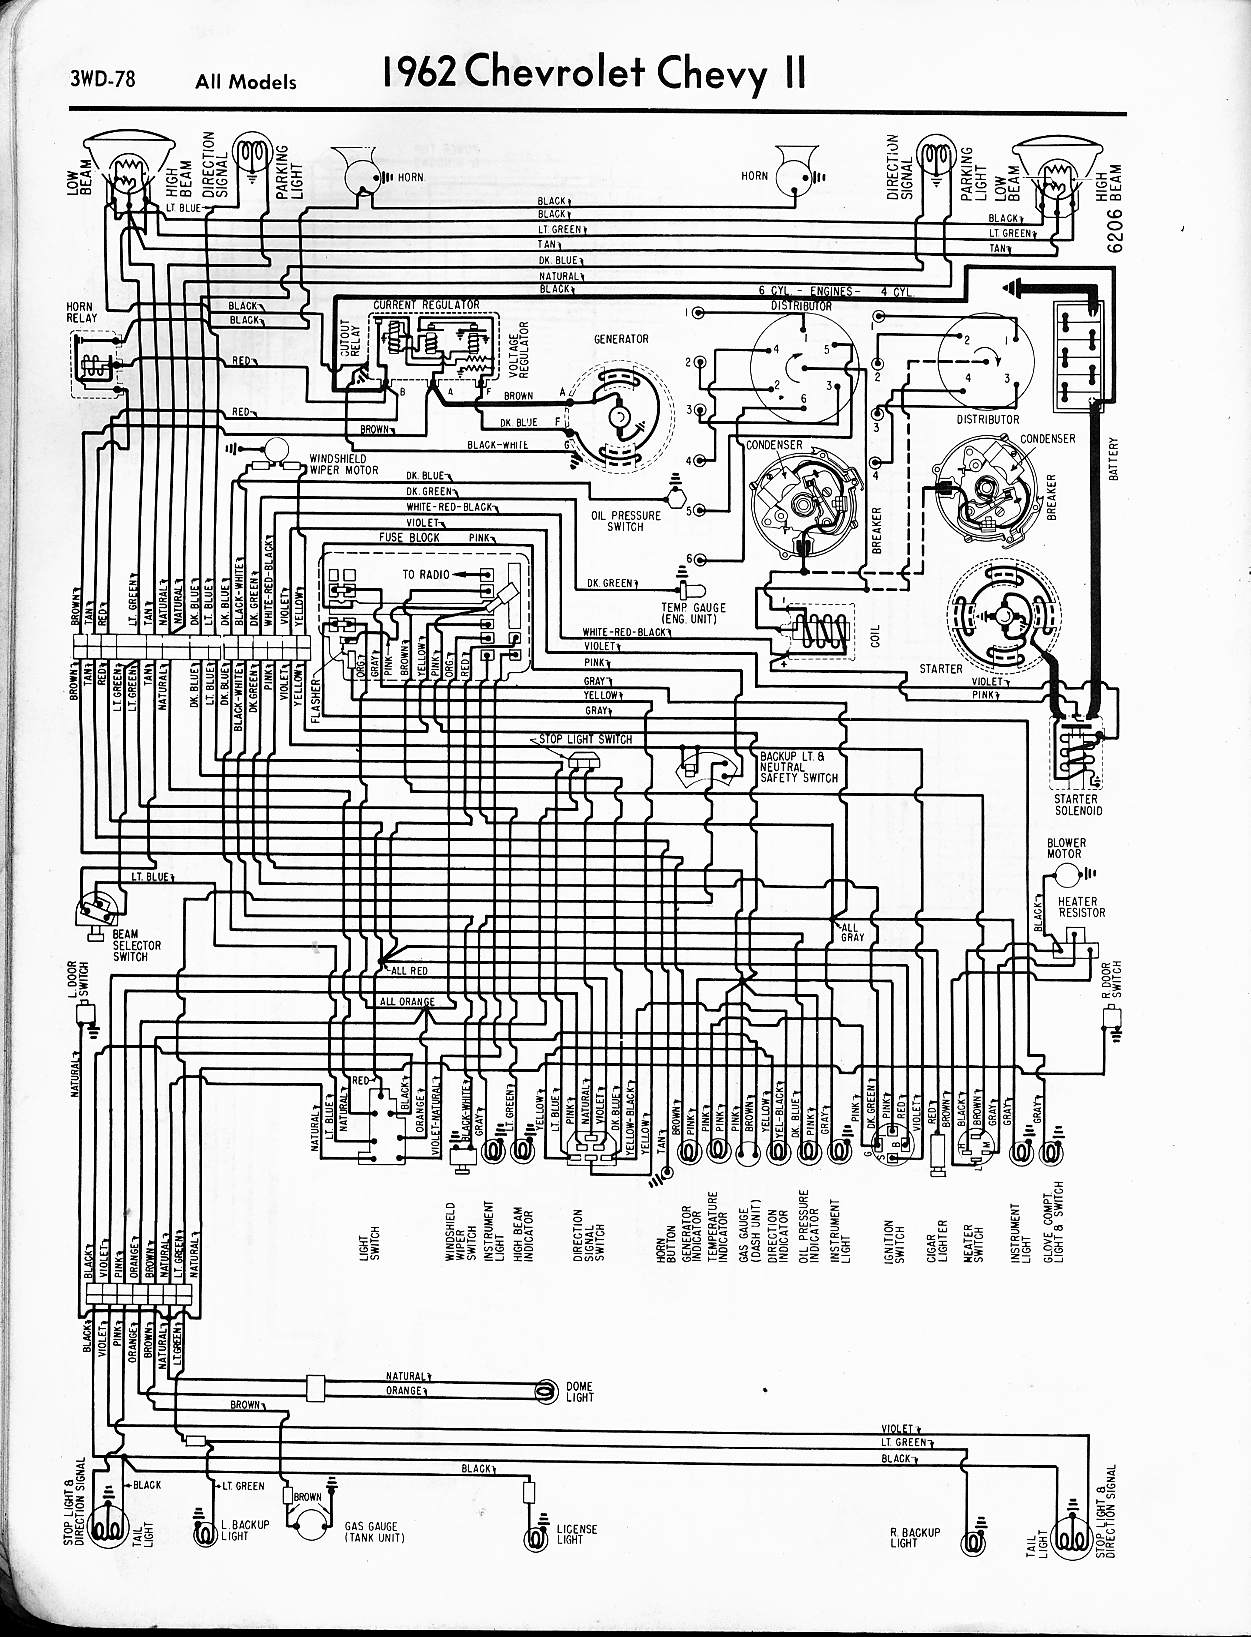 1969 camaro windshield wiper motor wiring diagram windshield wiper circuit windshield wiper circuit windshield wiper circuit windshield wiper circuit